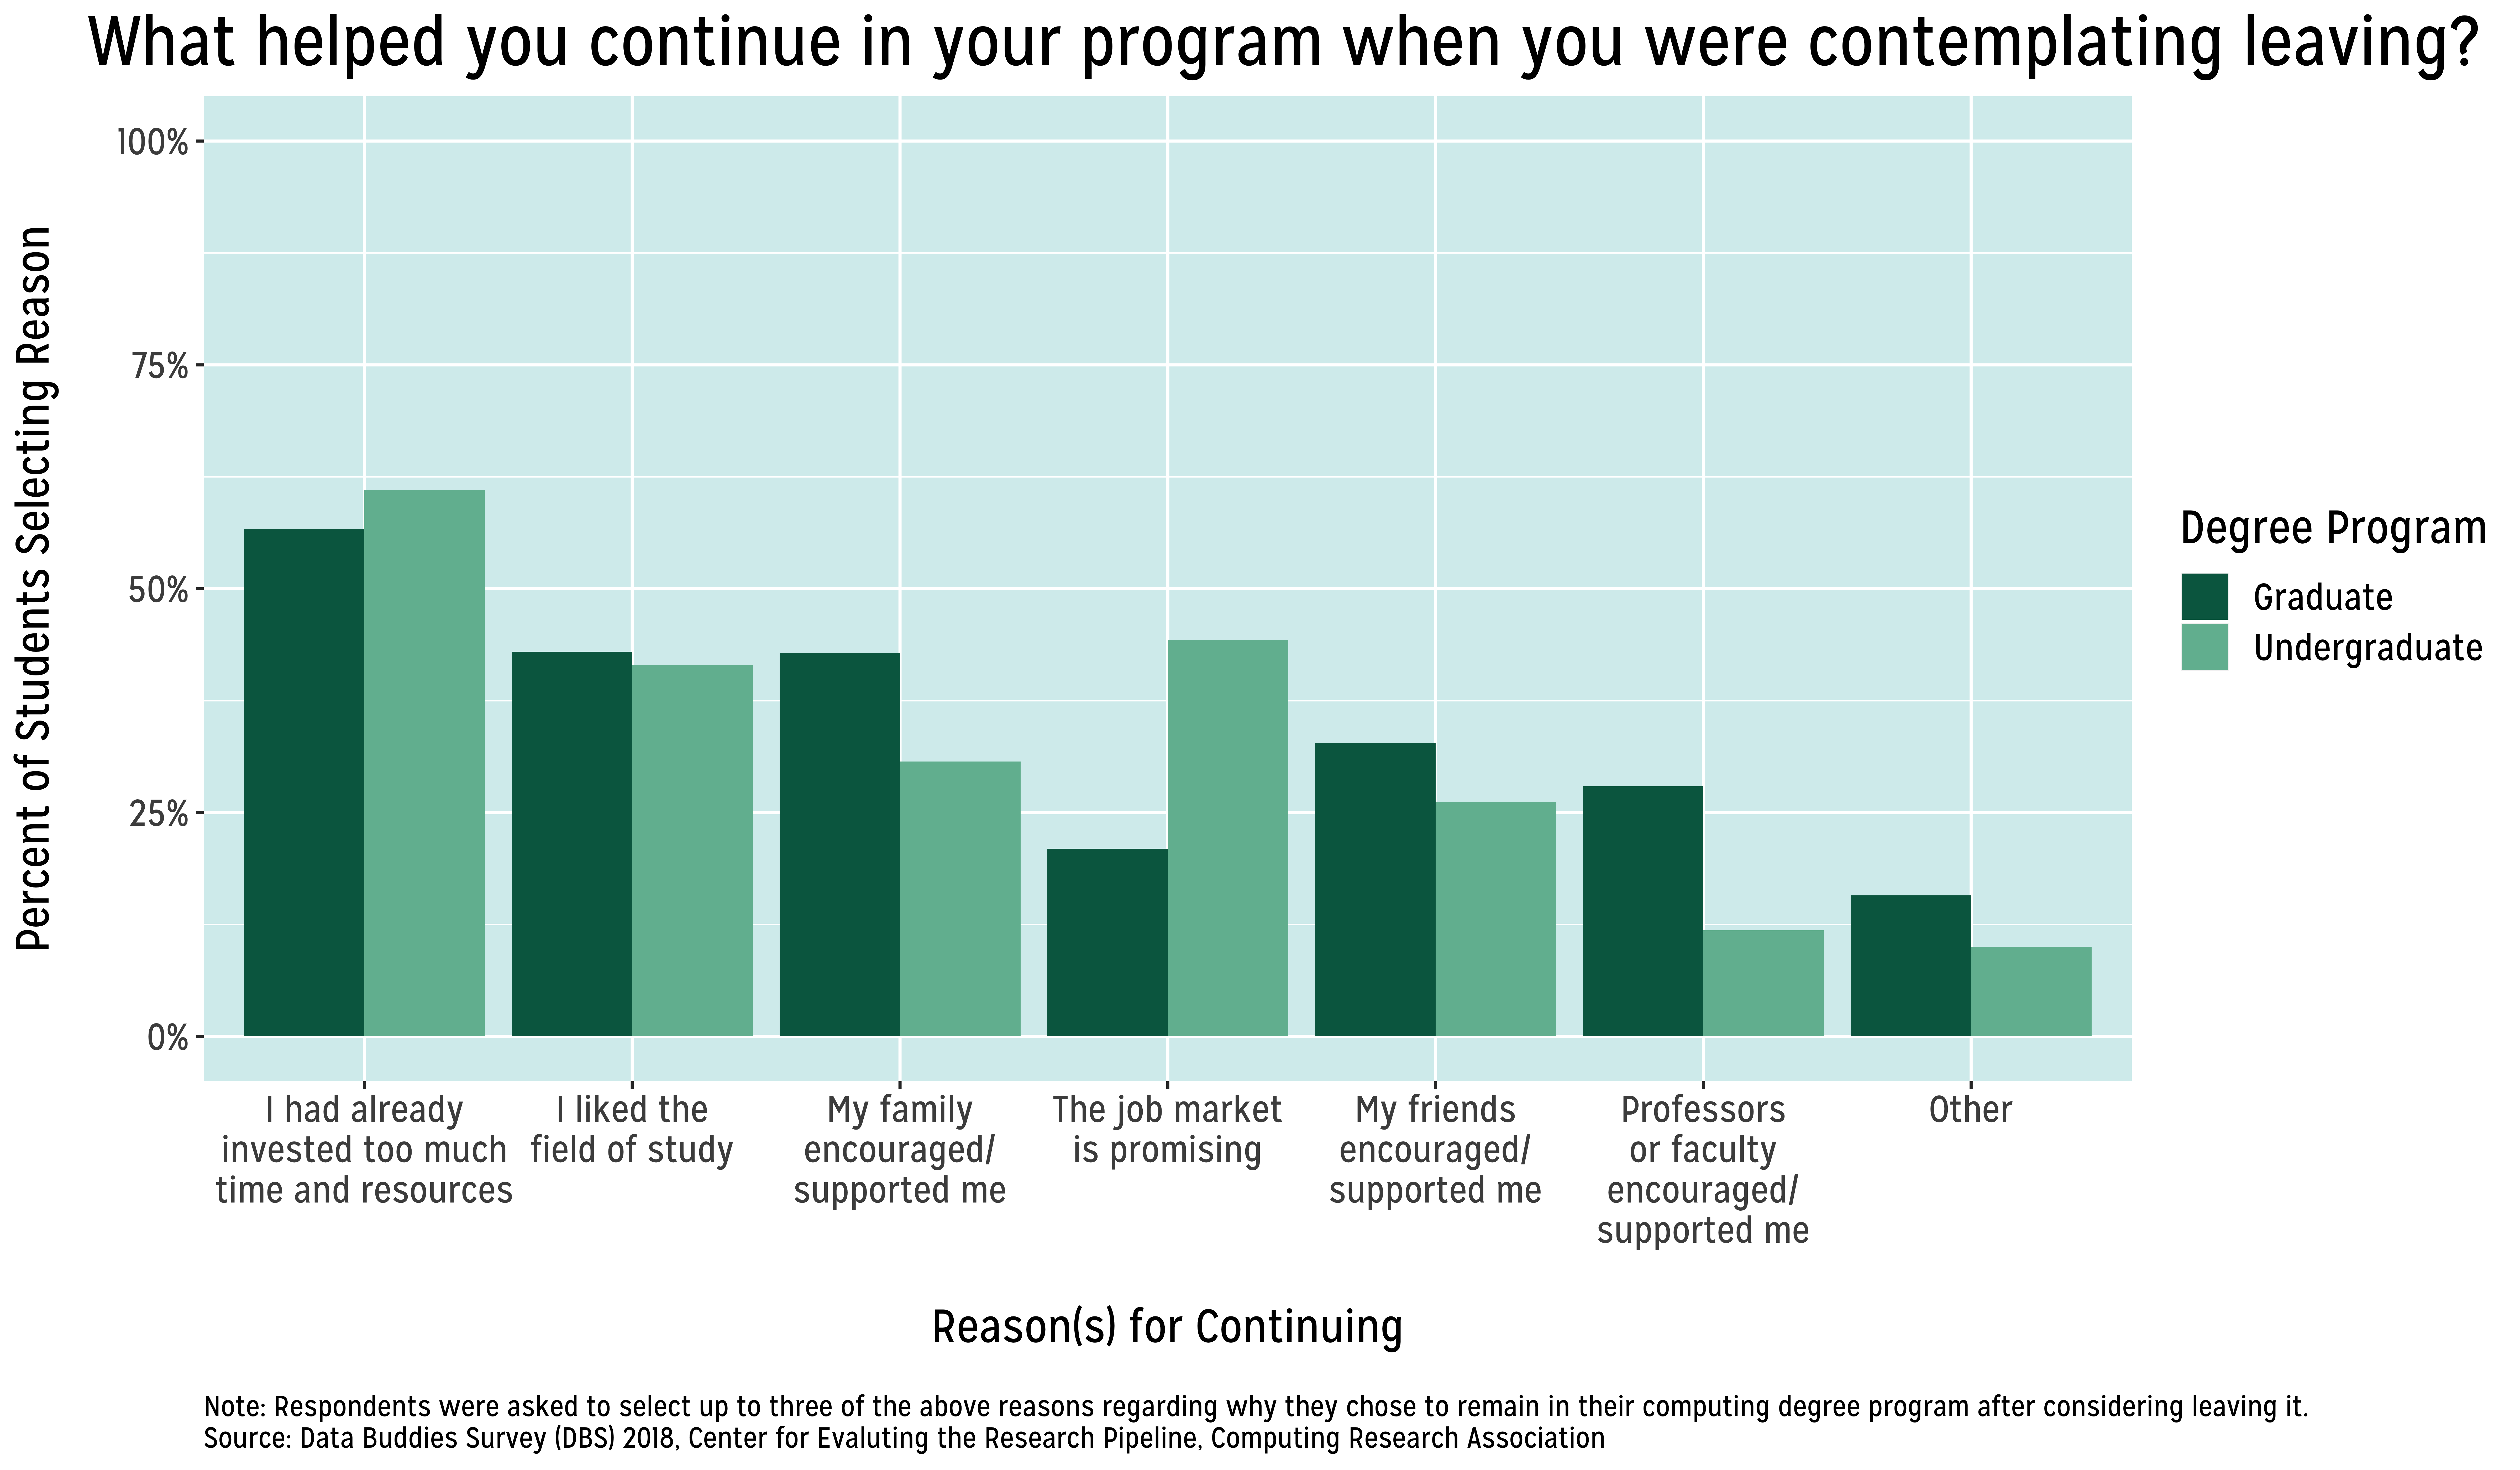 Bar graphs of undergraduate and graduate students' responses to what reasons helped them continue in their computing degree programs